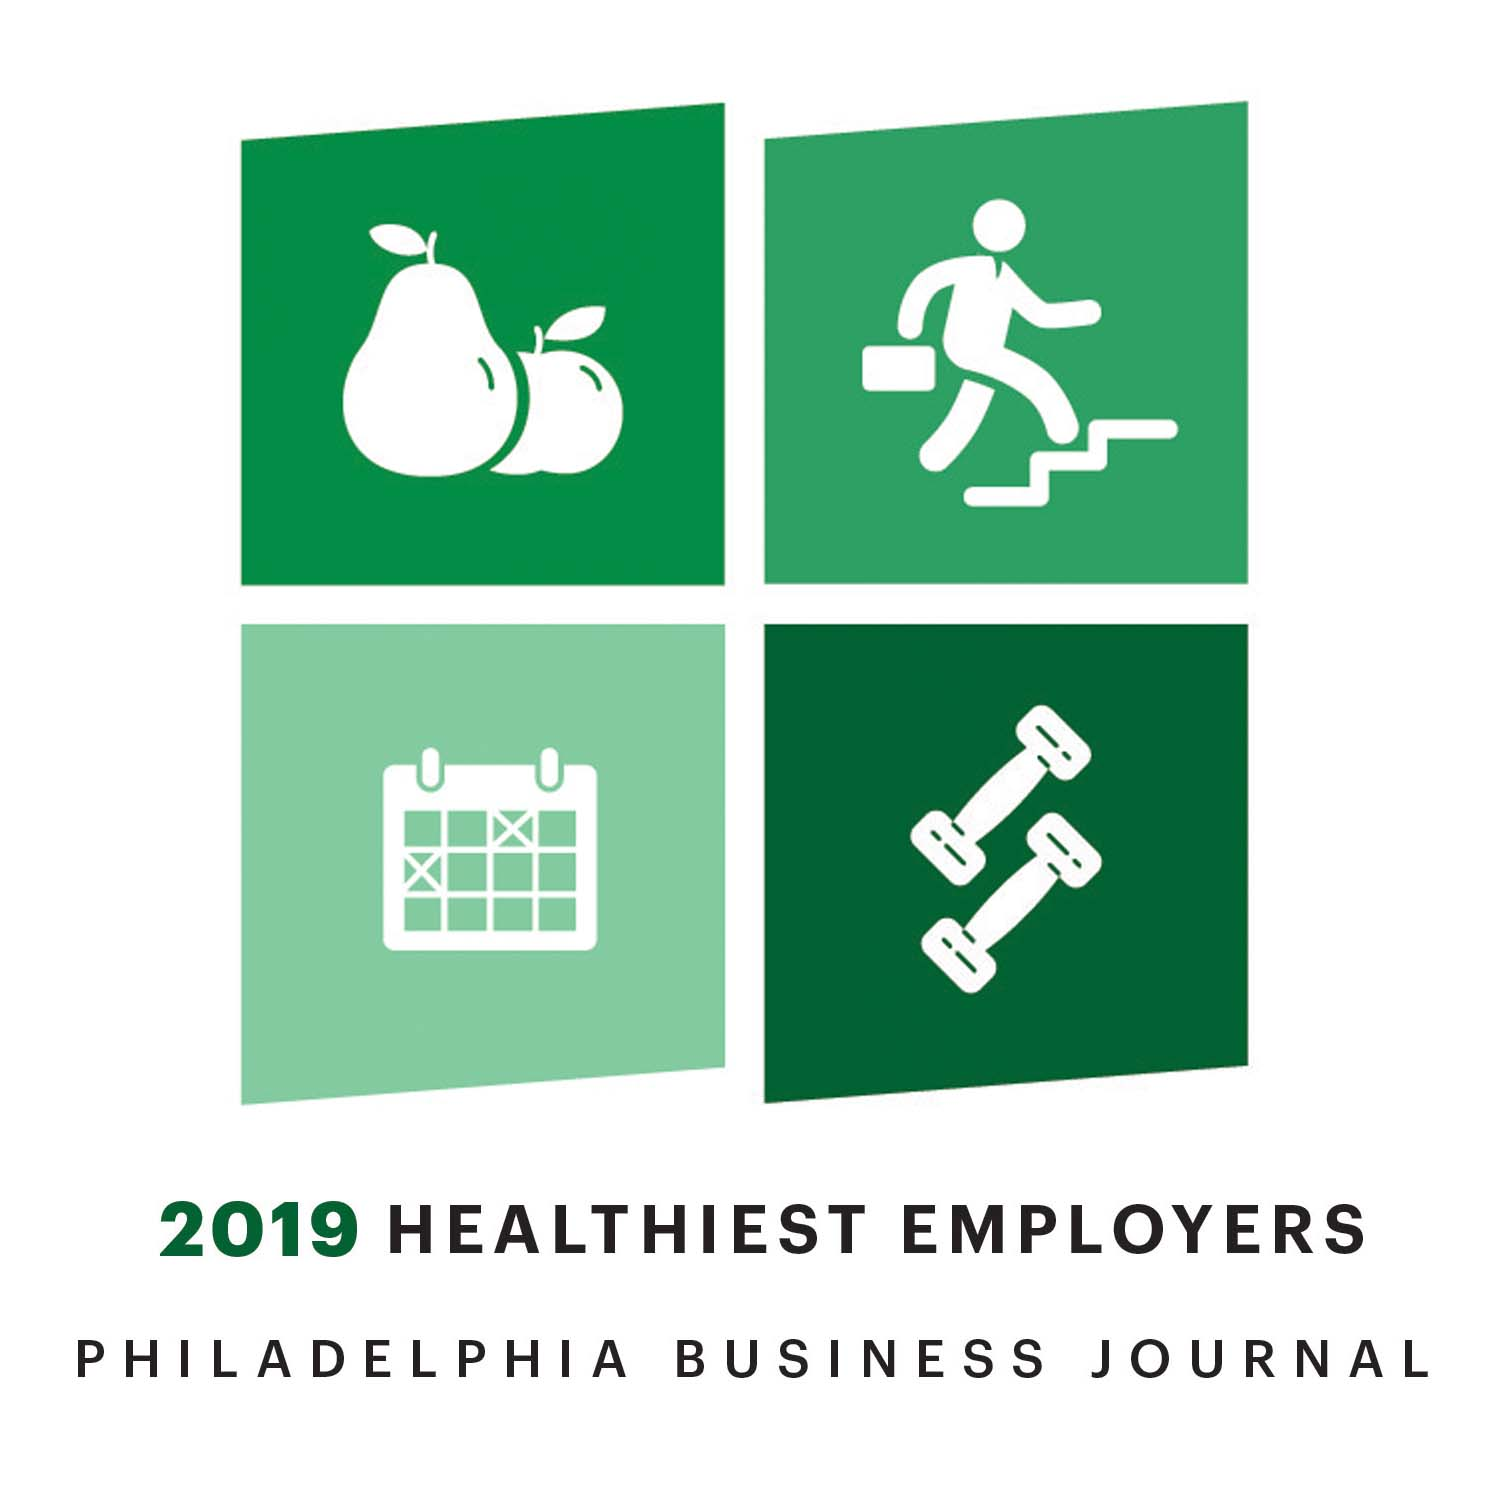 2019 Healthiest Employers Logo 01